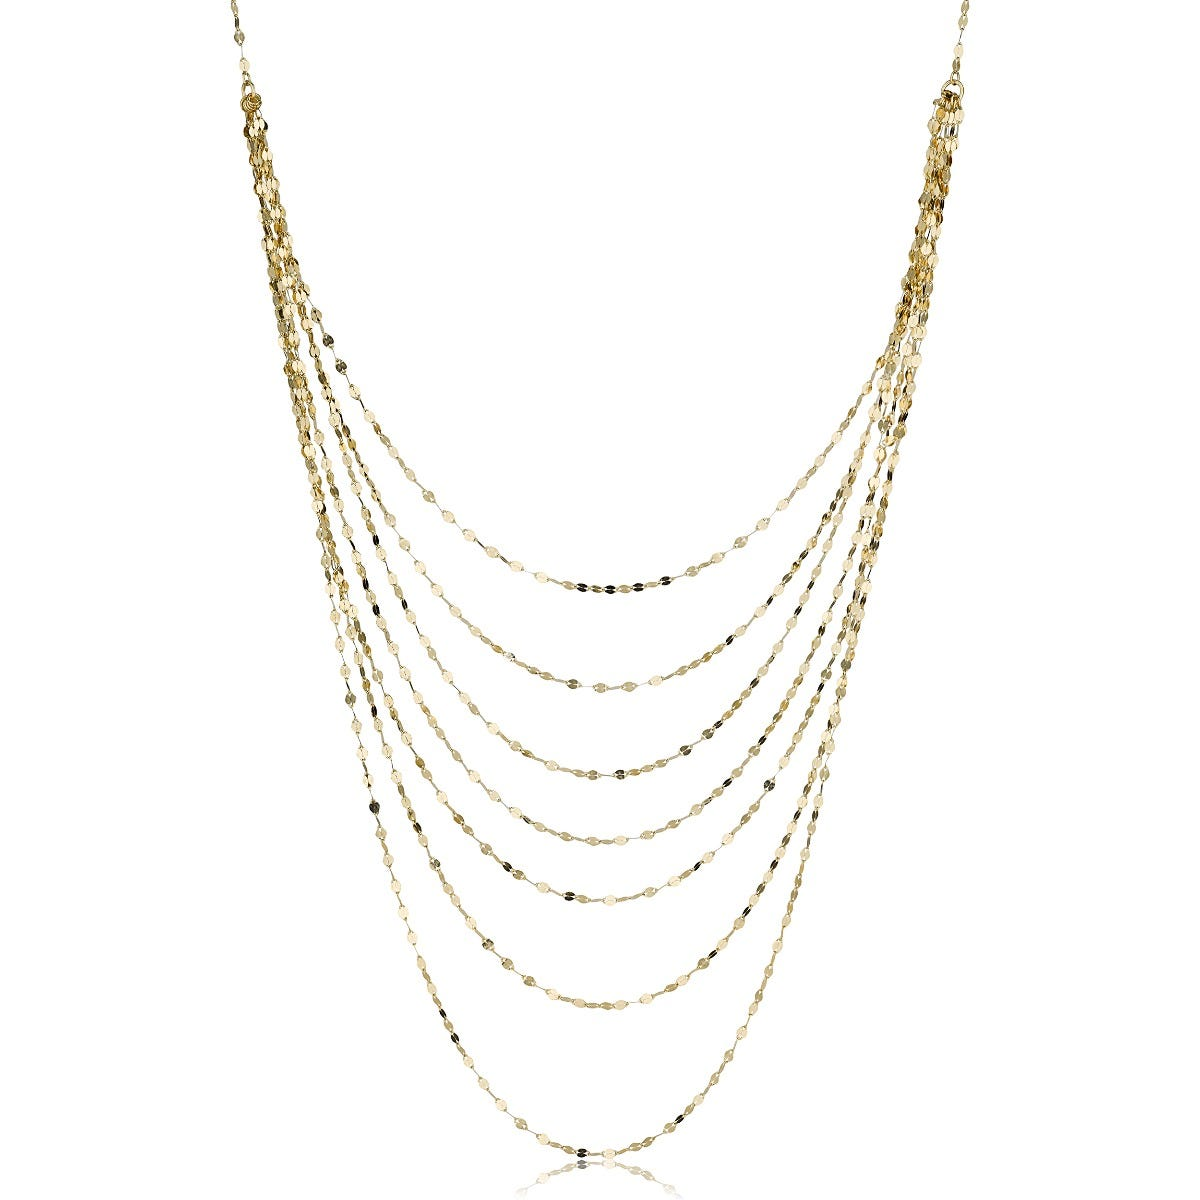 7-Layer Mirror Link Fashion Necklace in 14k Yellow Gold